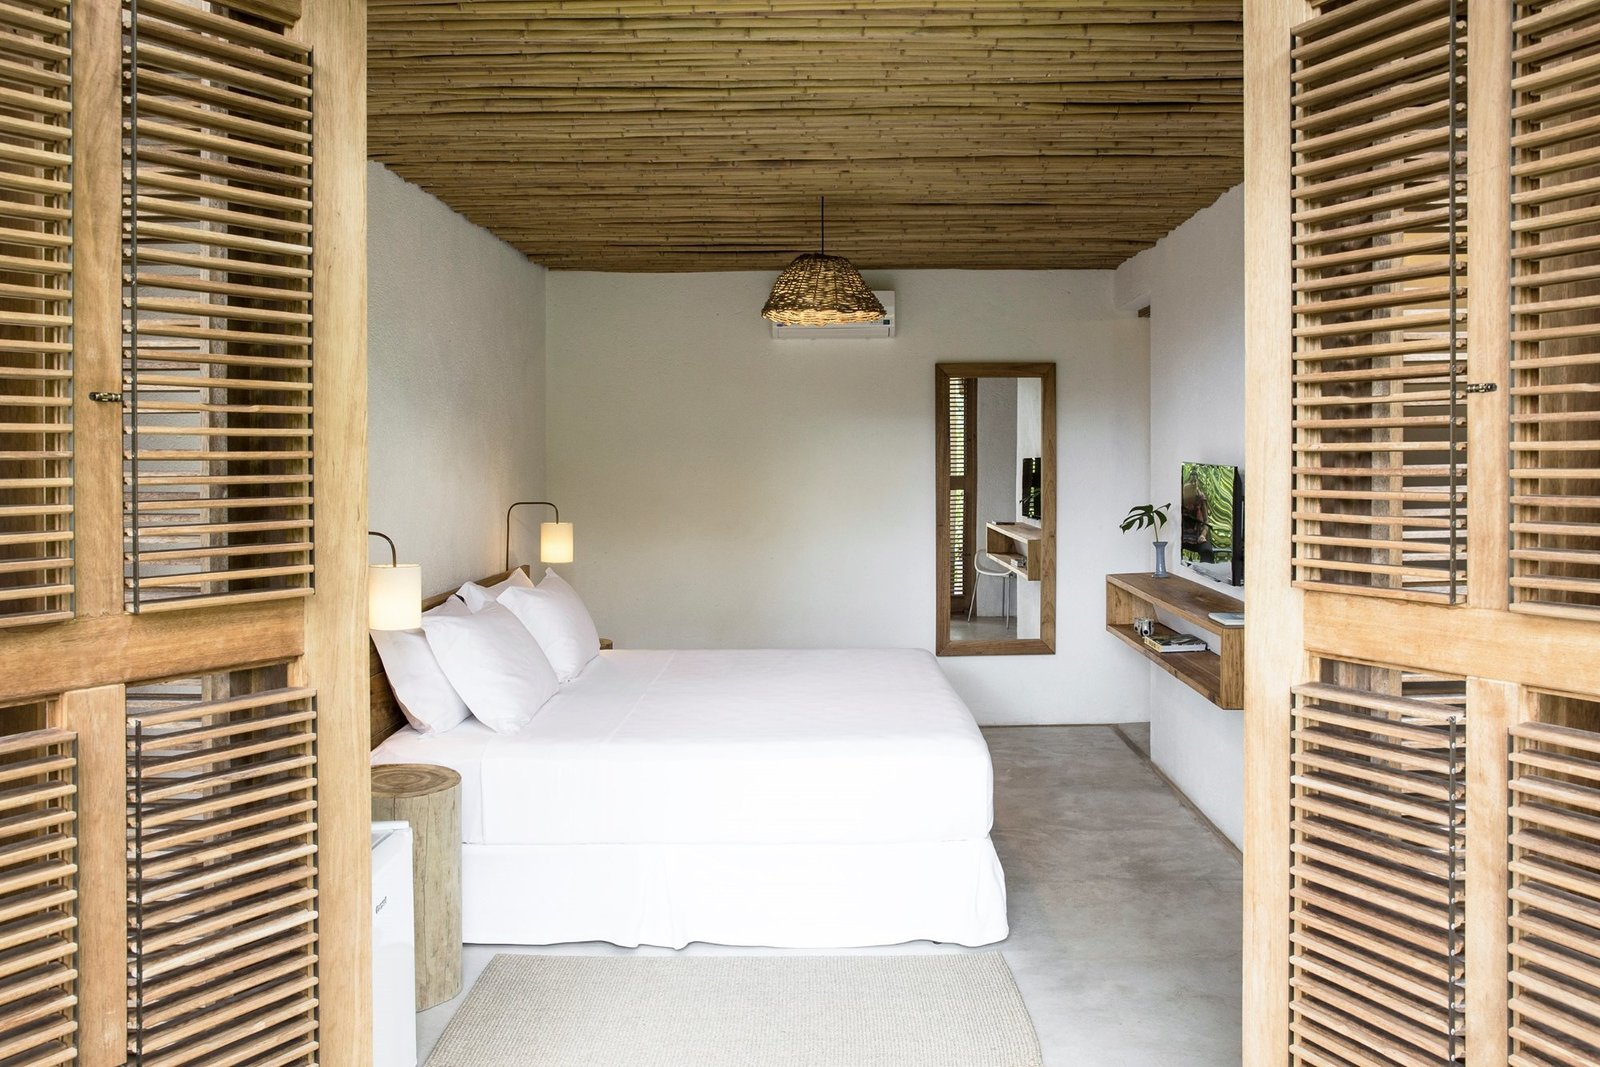 Bedroom, Wall, Rug, Bed, Concrete, and Pendant  Best Bedroom Bed Rug Concrete Wall Photos from Casa Mar Paraty